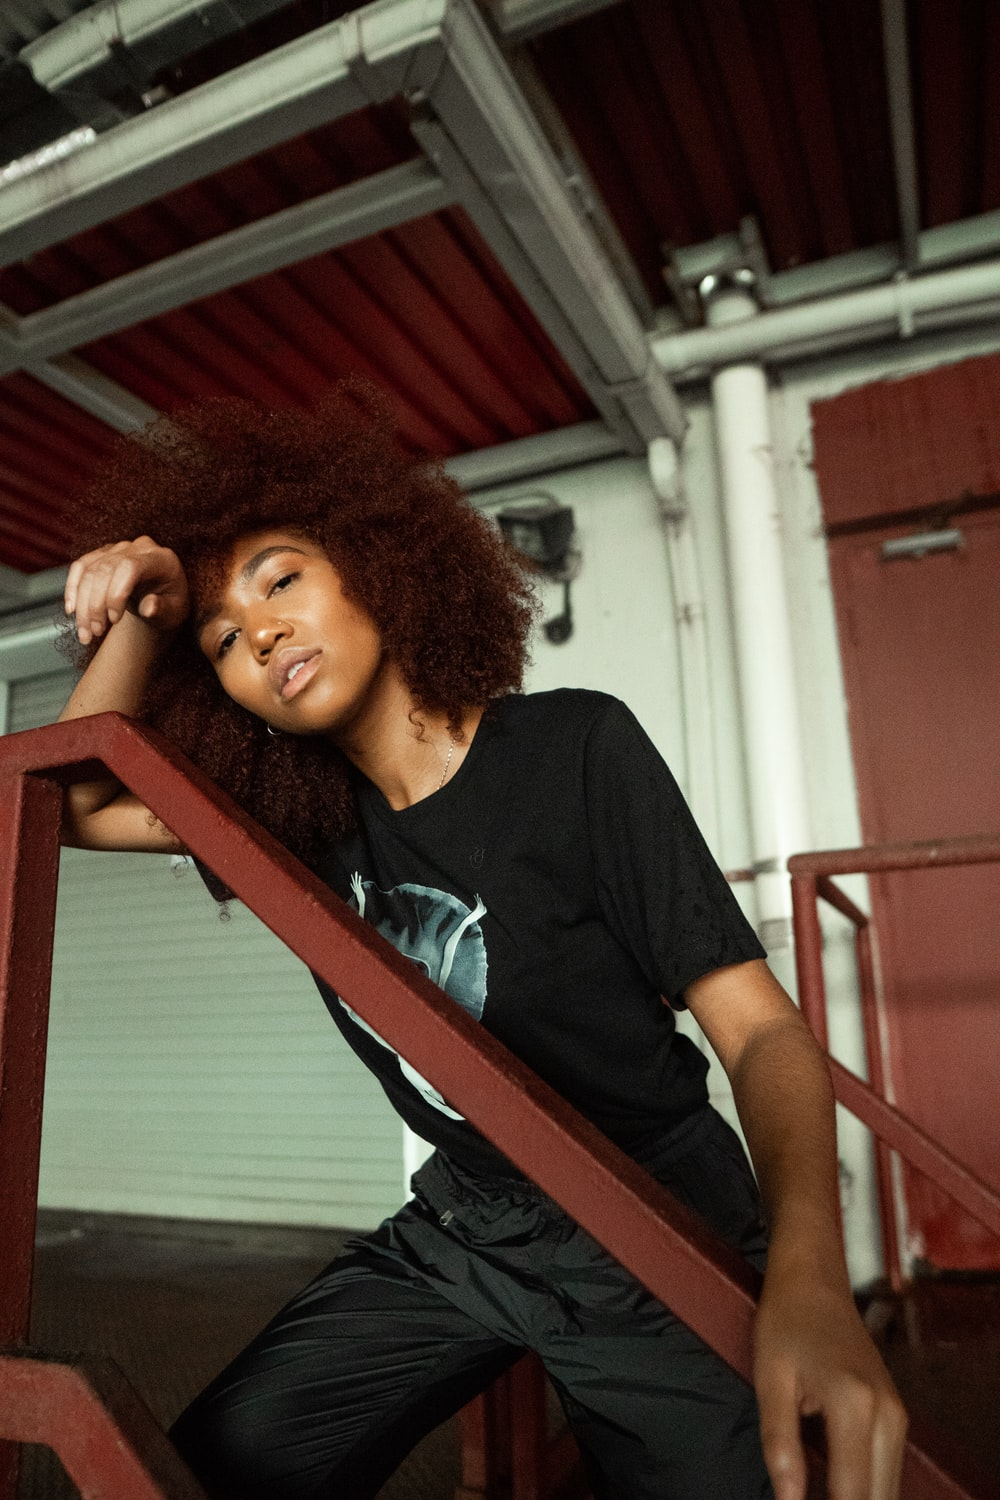 woman in black crew neck t-shirt leaning on red metal railings